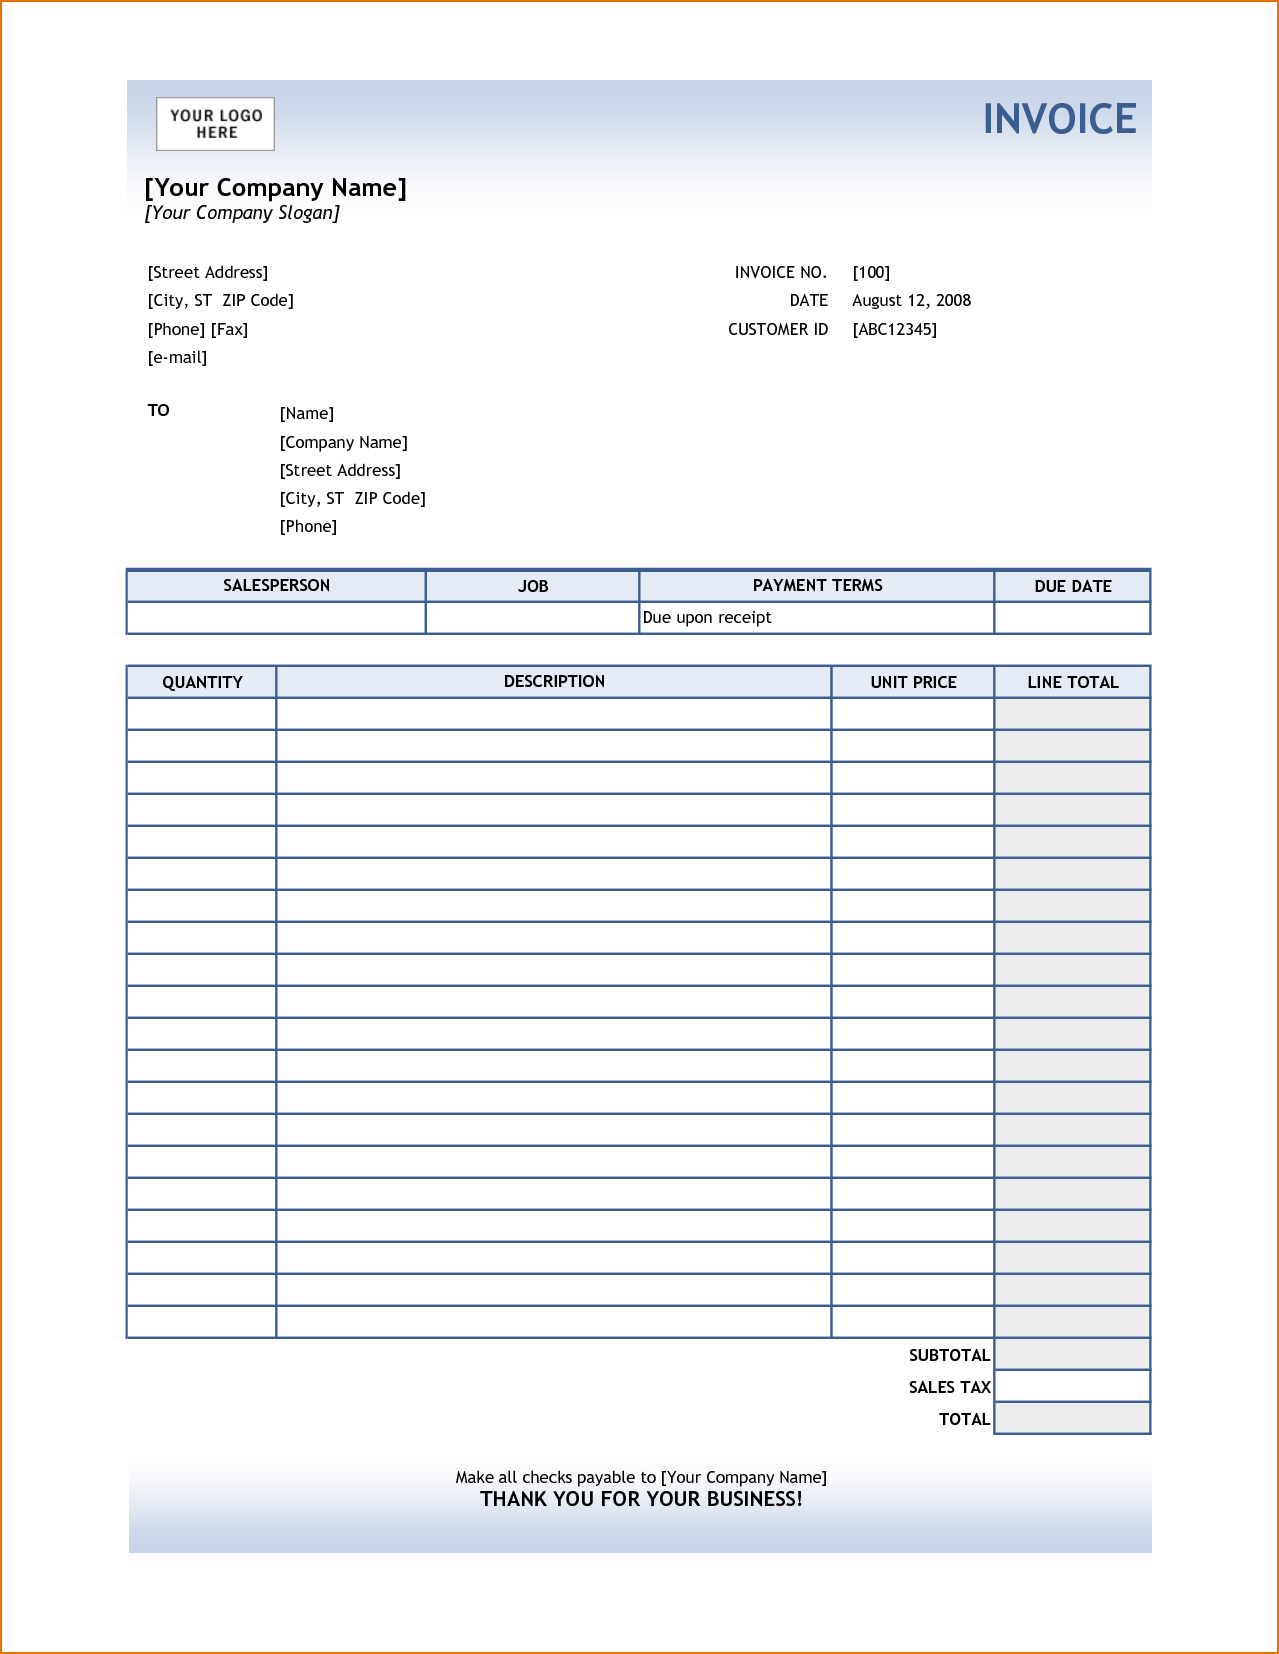 Bill for Services Rendered Template and 6 Sample Invoice for Services Printable Receipt